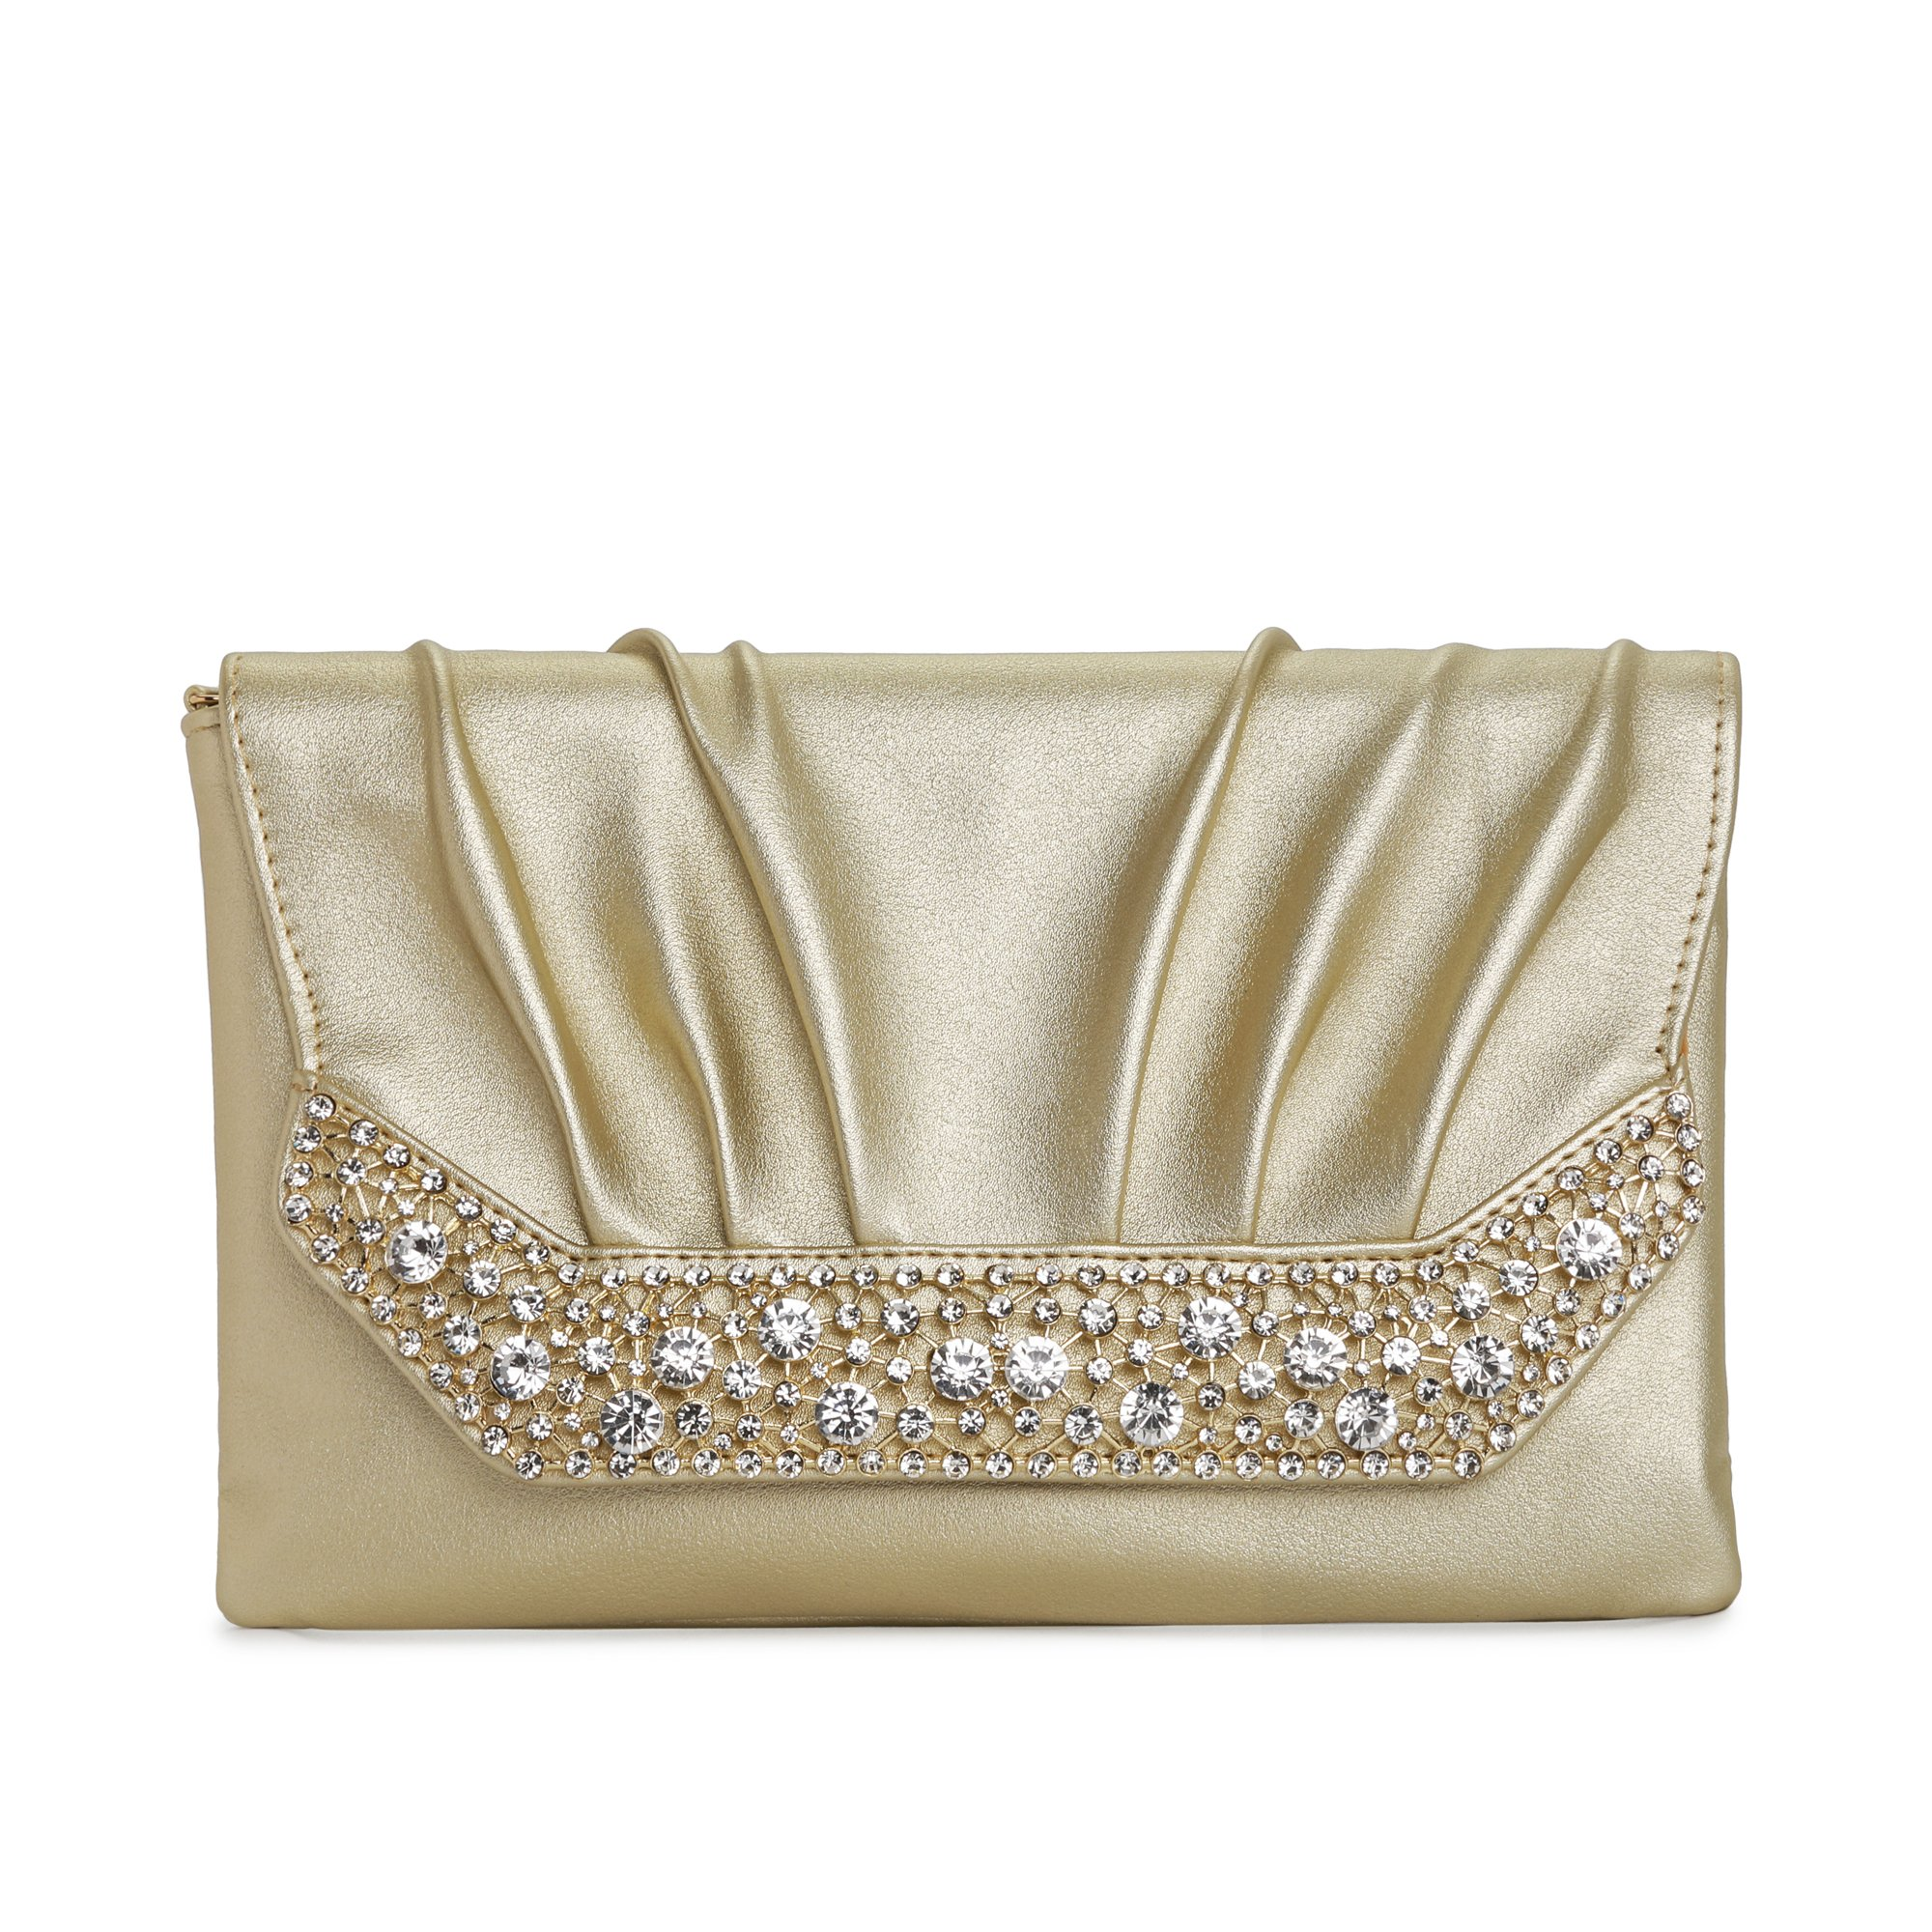 Evening Clutches Bags for Women, Envelope Clutch Wedding Purses With Chain Cross Body Shoulder Bag for Party Prom (Gold)